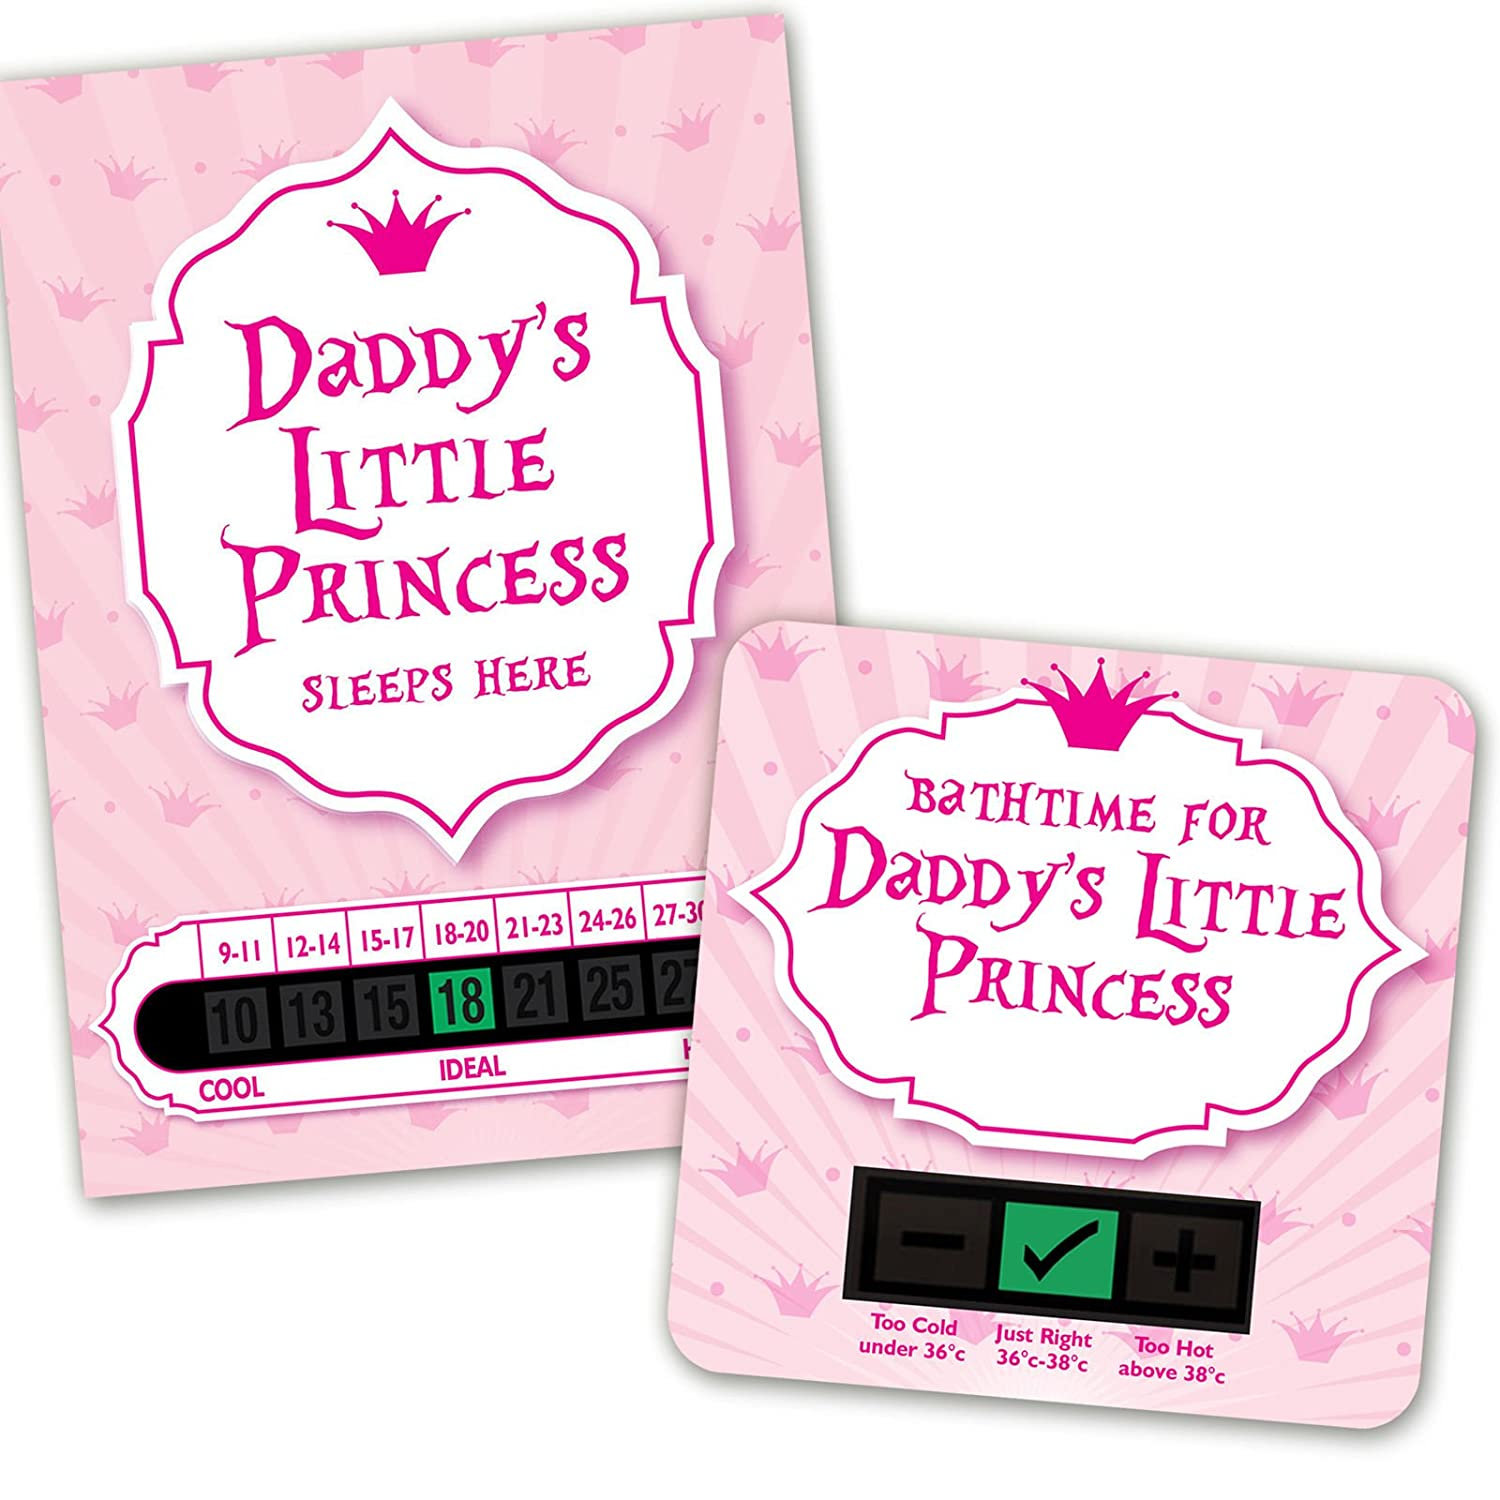 Daddys Little Princess room thermometer and bath thermometer set Funky Monkey House